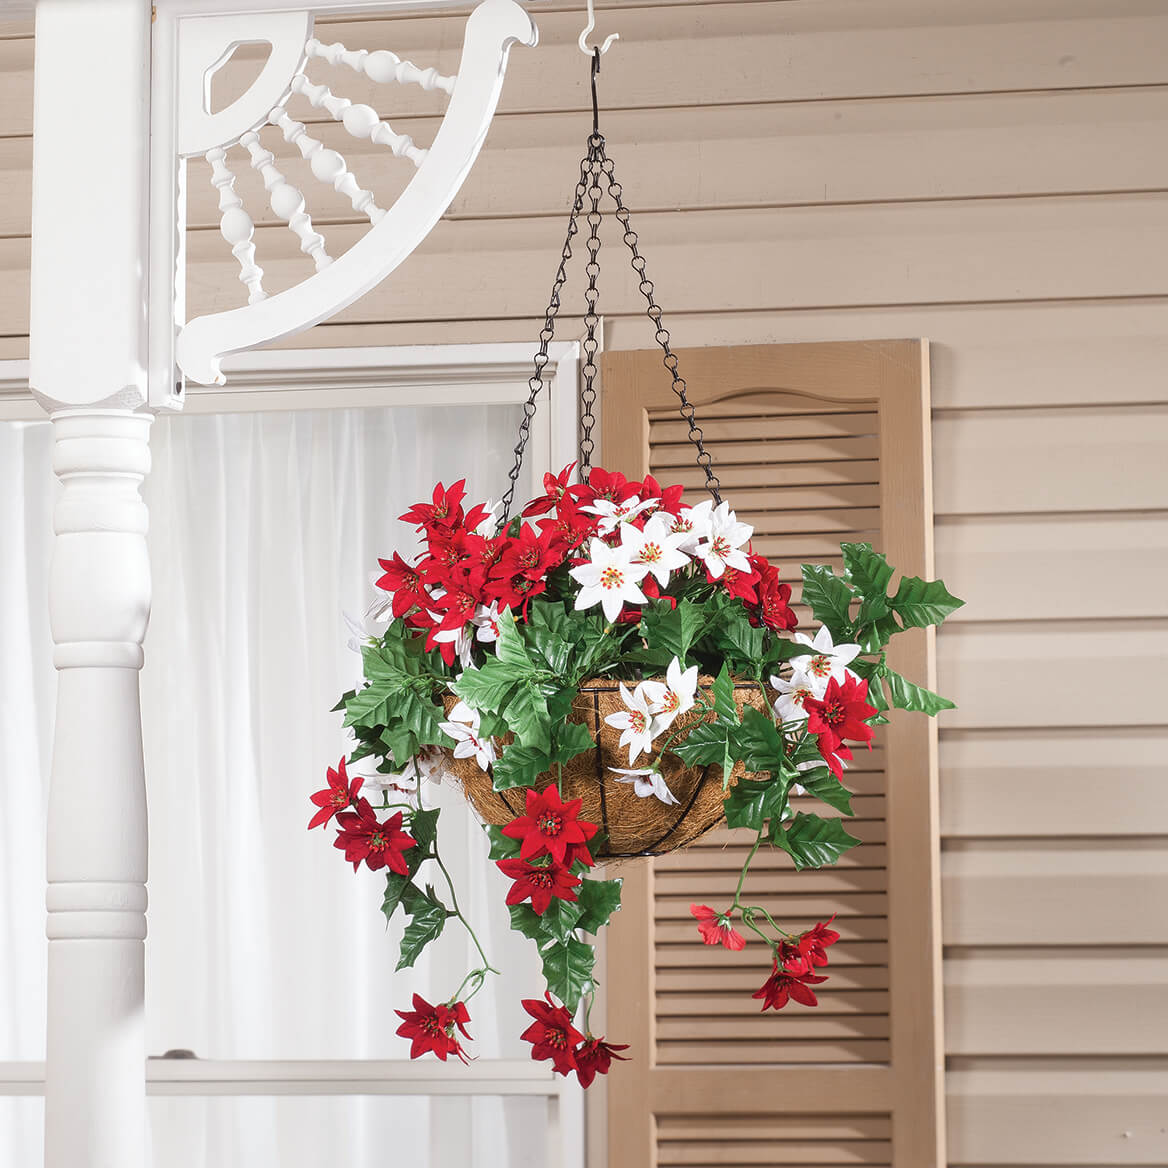 Fully Assembled Mini Poinsettia Hanging Baskets, Set of 2-371409